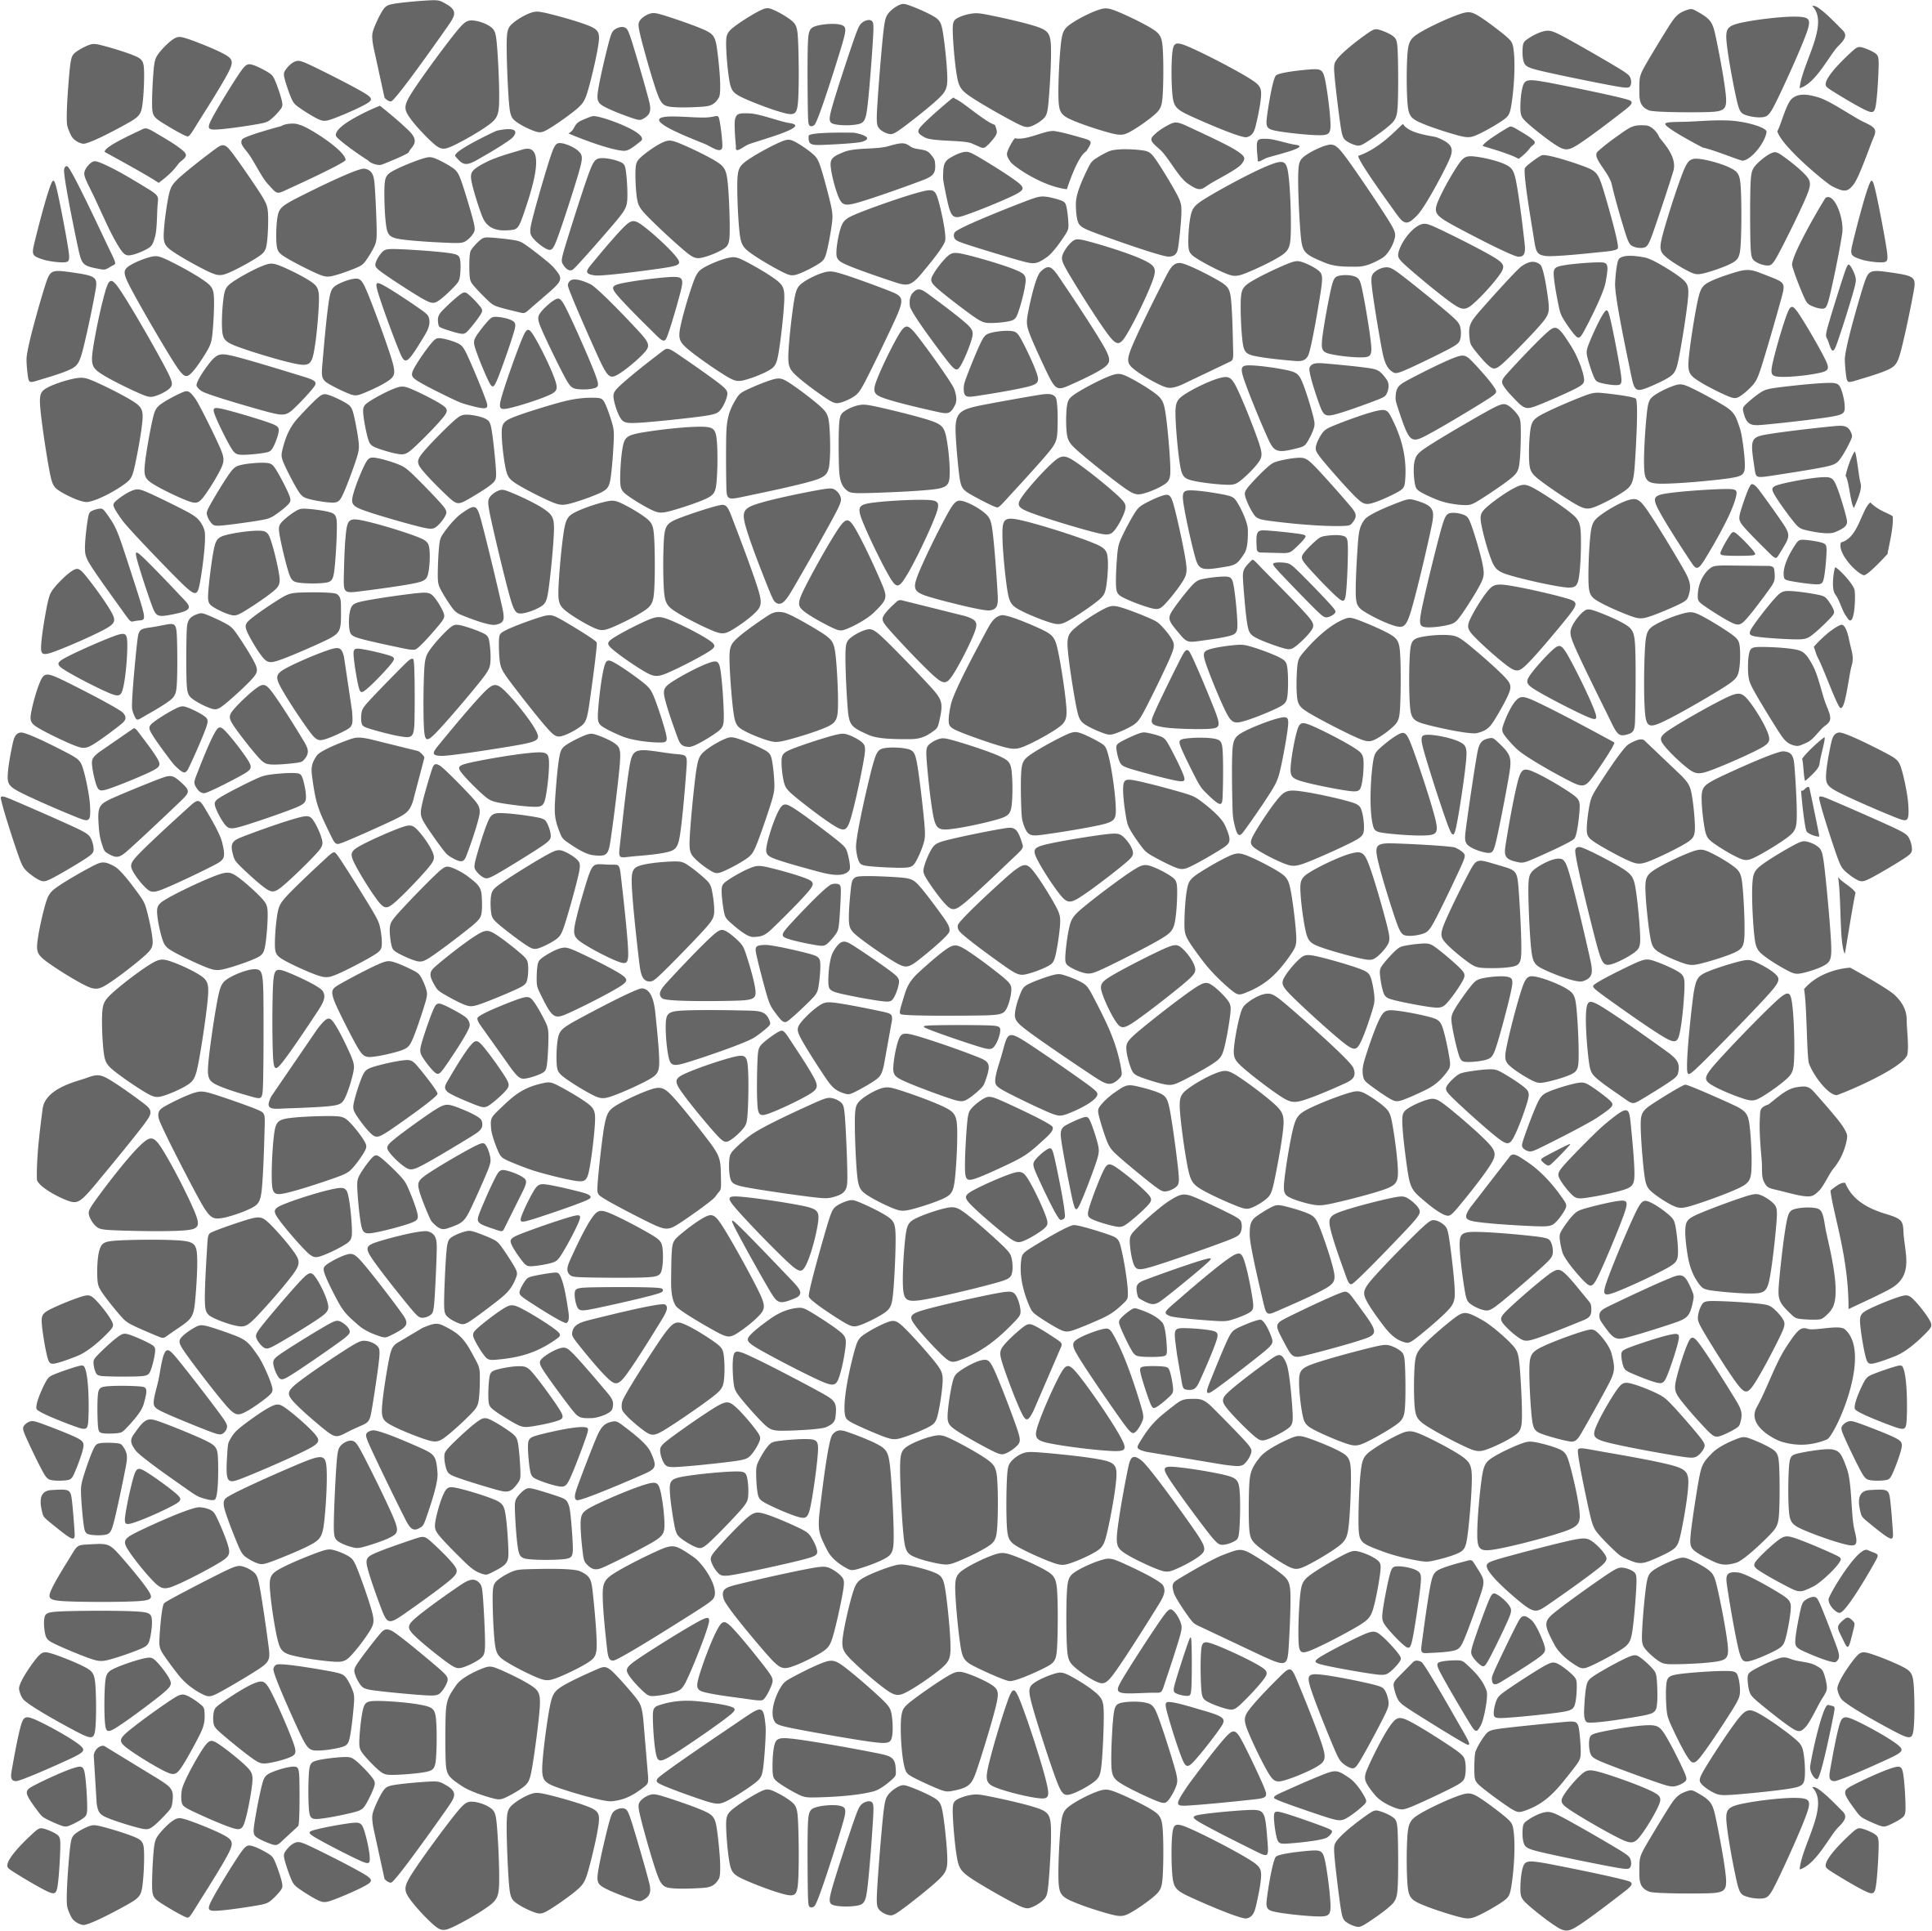 Crackle Pattern Stencil - (size 14''w x 14''h) Reusable Wall Stencils for Painting - Best Quality Template Allover Wallpaper ideas - Use on Walls, Floors, Fabrics, Glass, Wood, and More... by Stencils for Walls